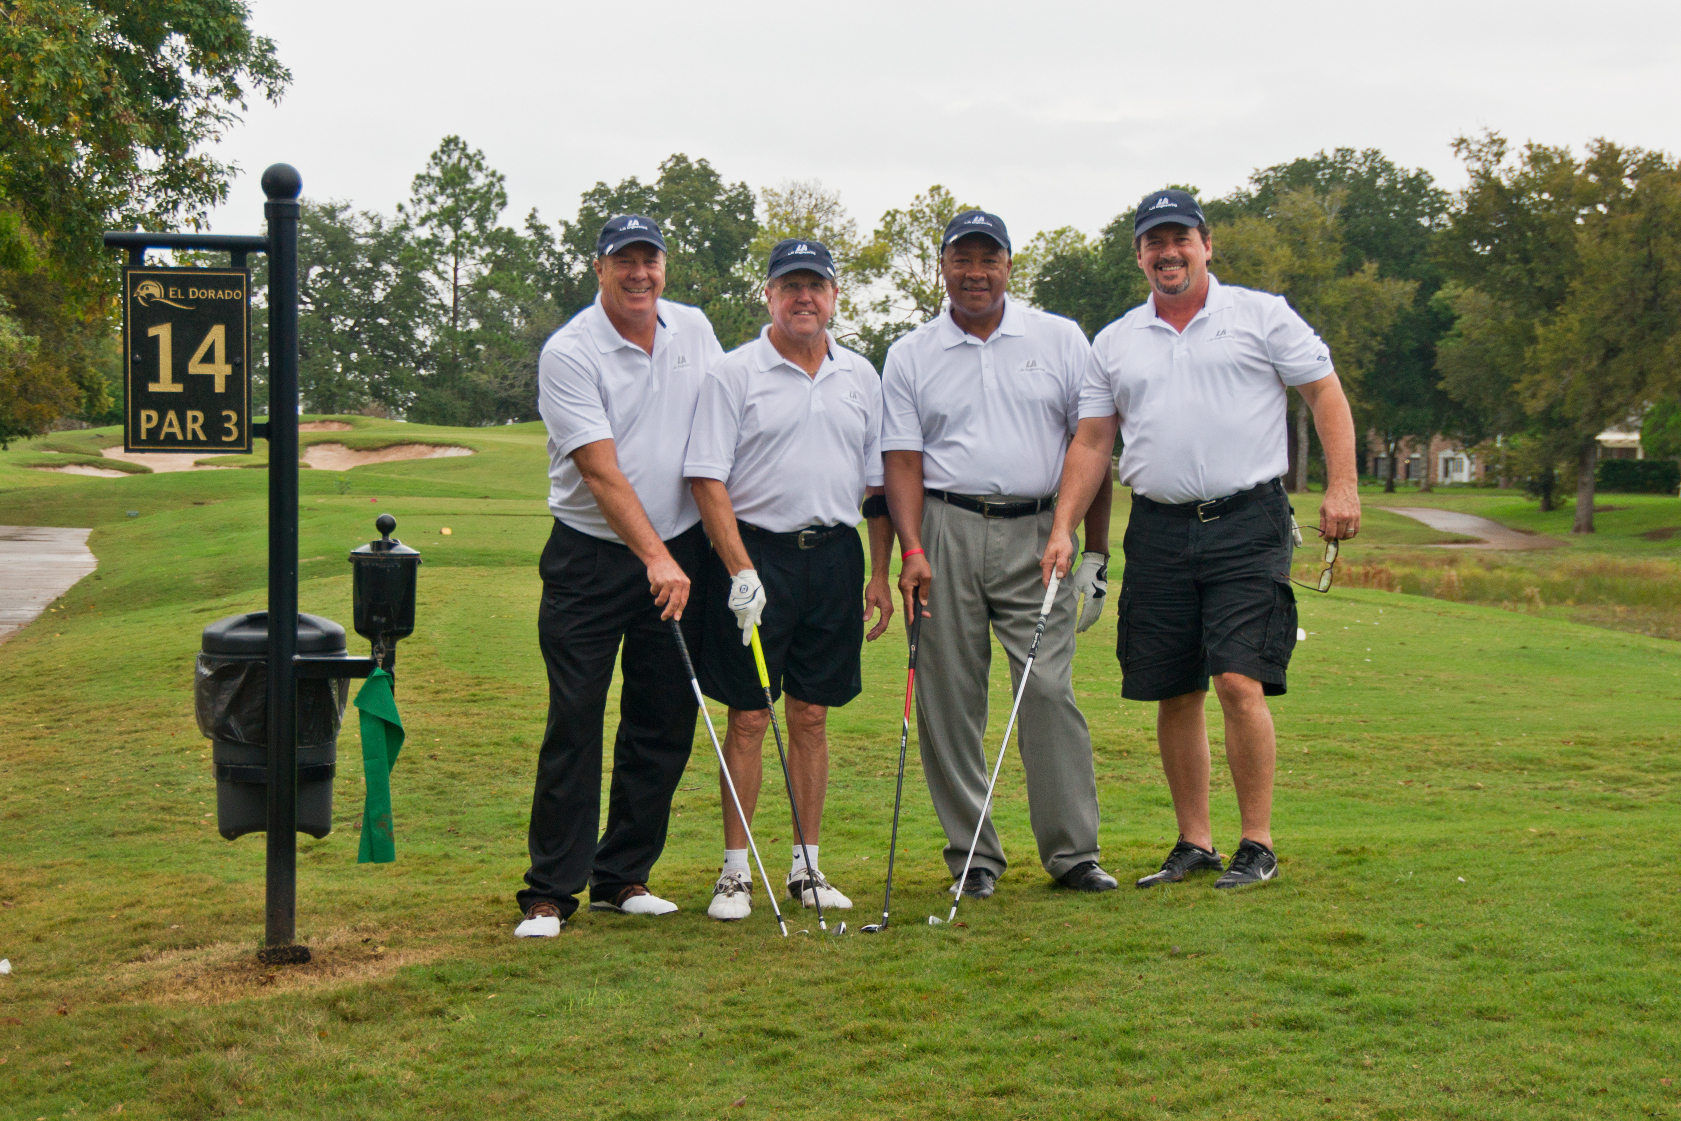 MAYOR'S TEAM OF ANTHONY FRANCIS, MAYOR ALLEN OWEN, FRANK GRACELY, AND DOUG CALLAME AT FORT BEND CHAMBER CHALLENGE 2013